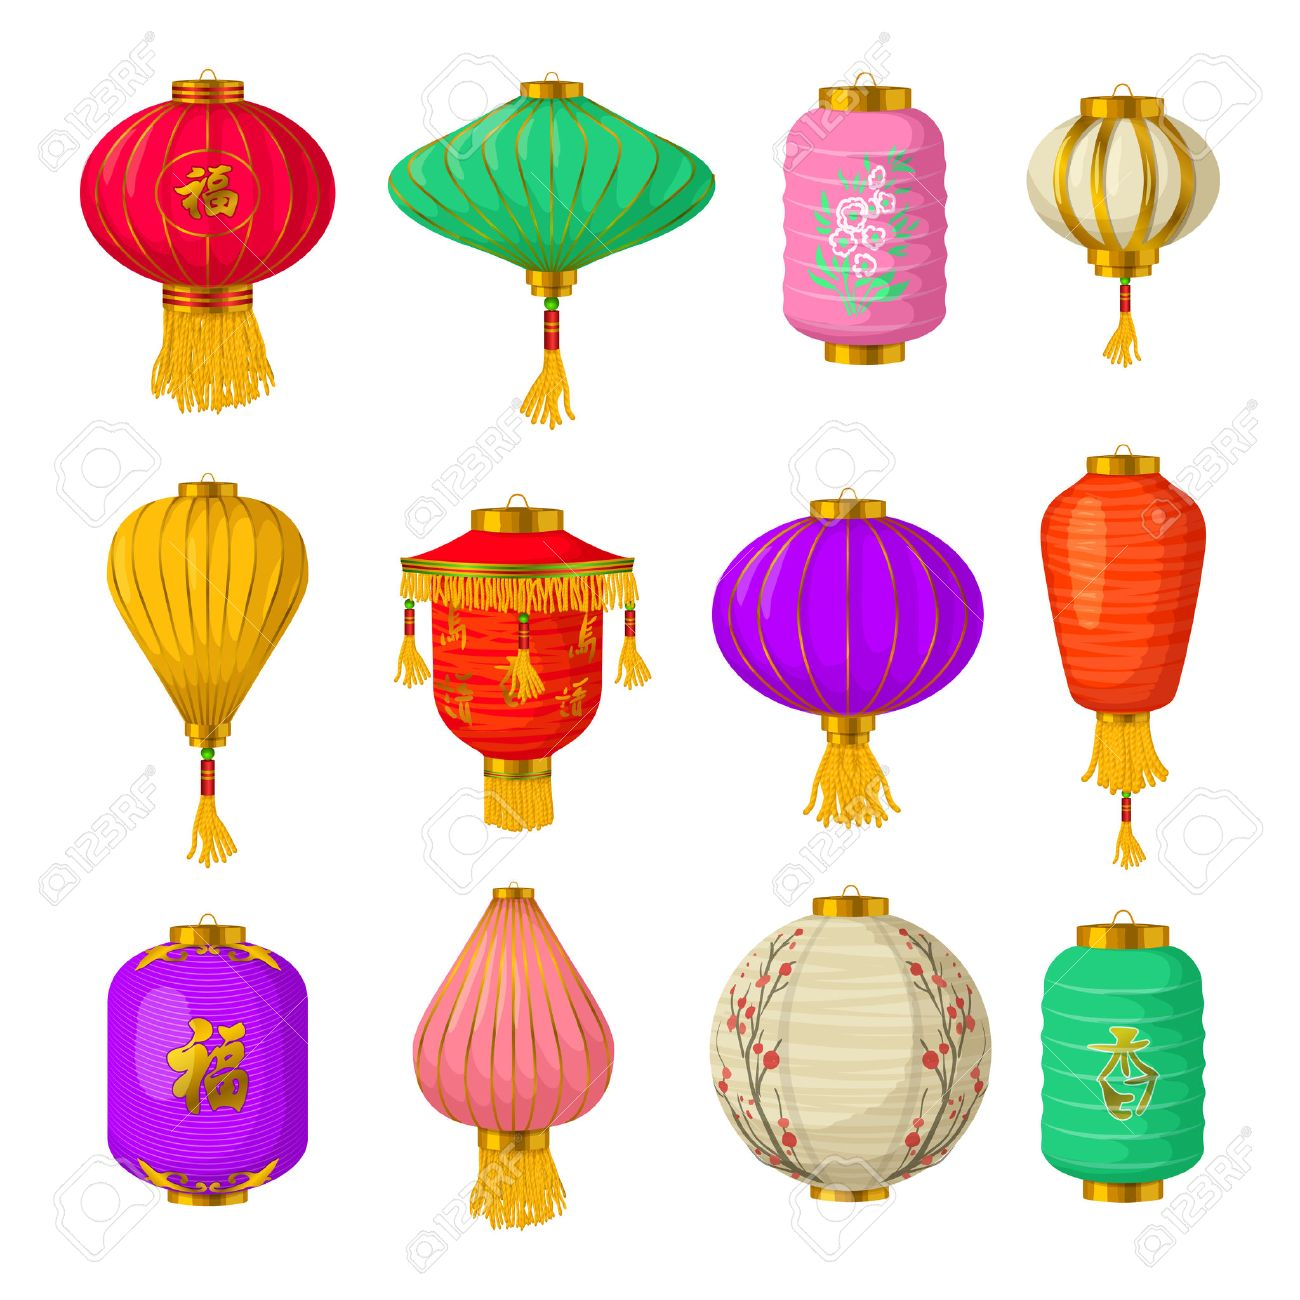 chinese paper lanterns icons set in cartoon style on a white